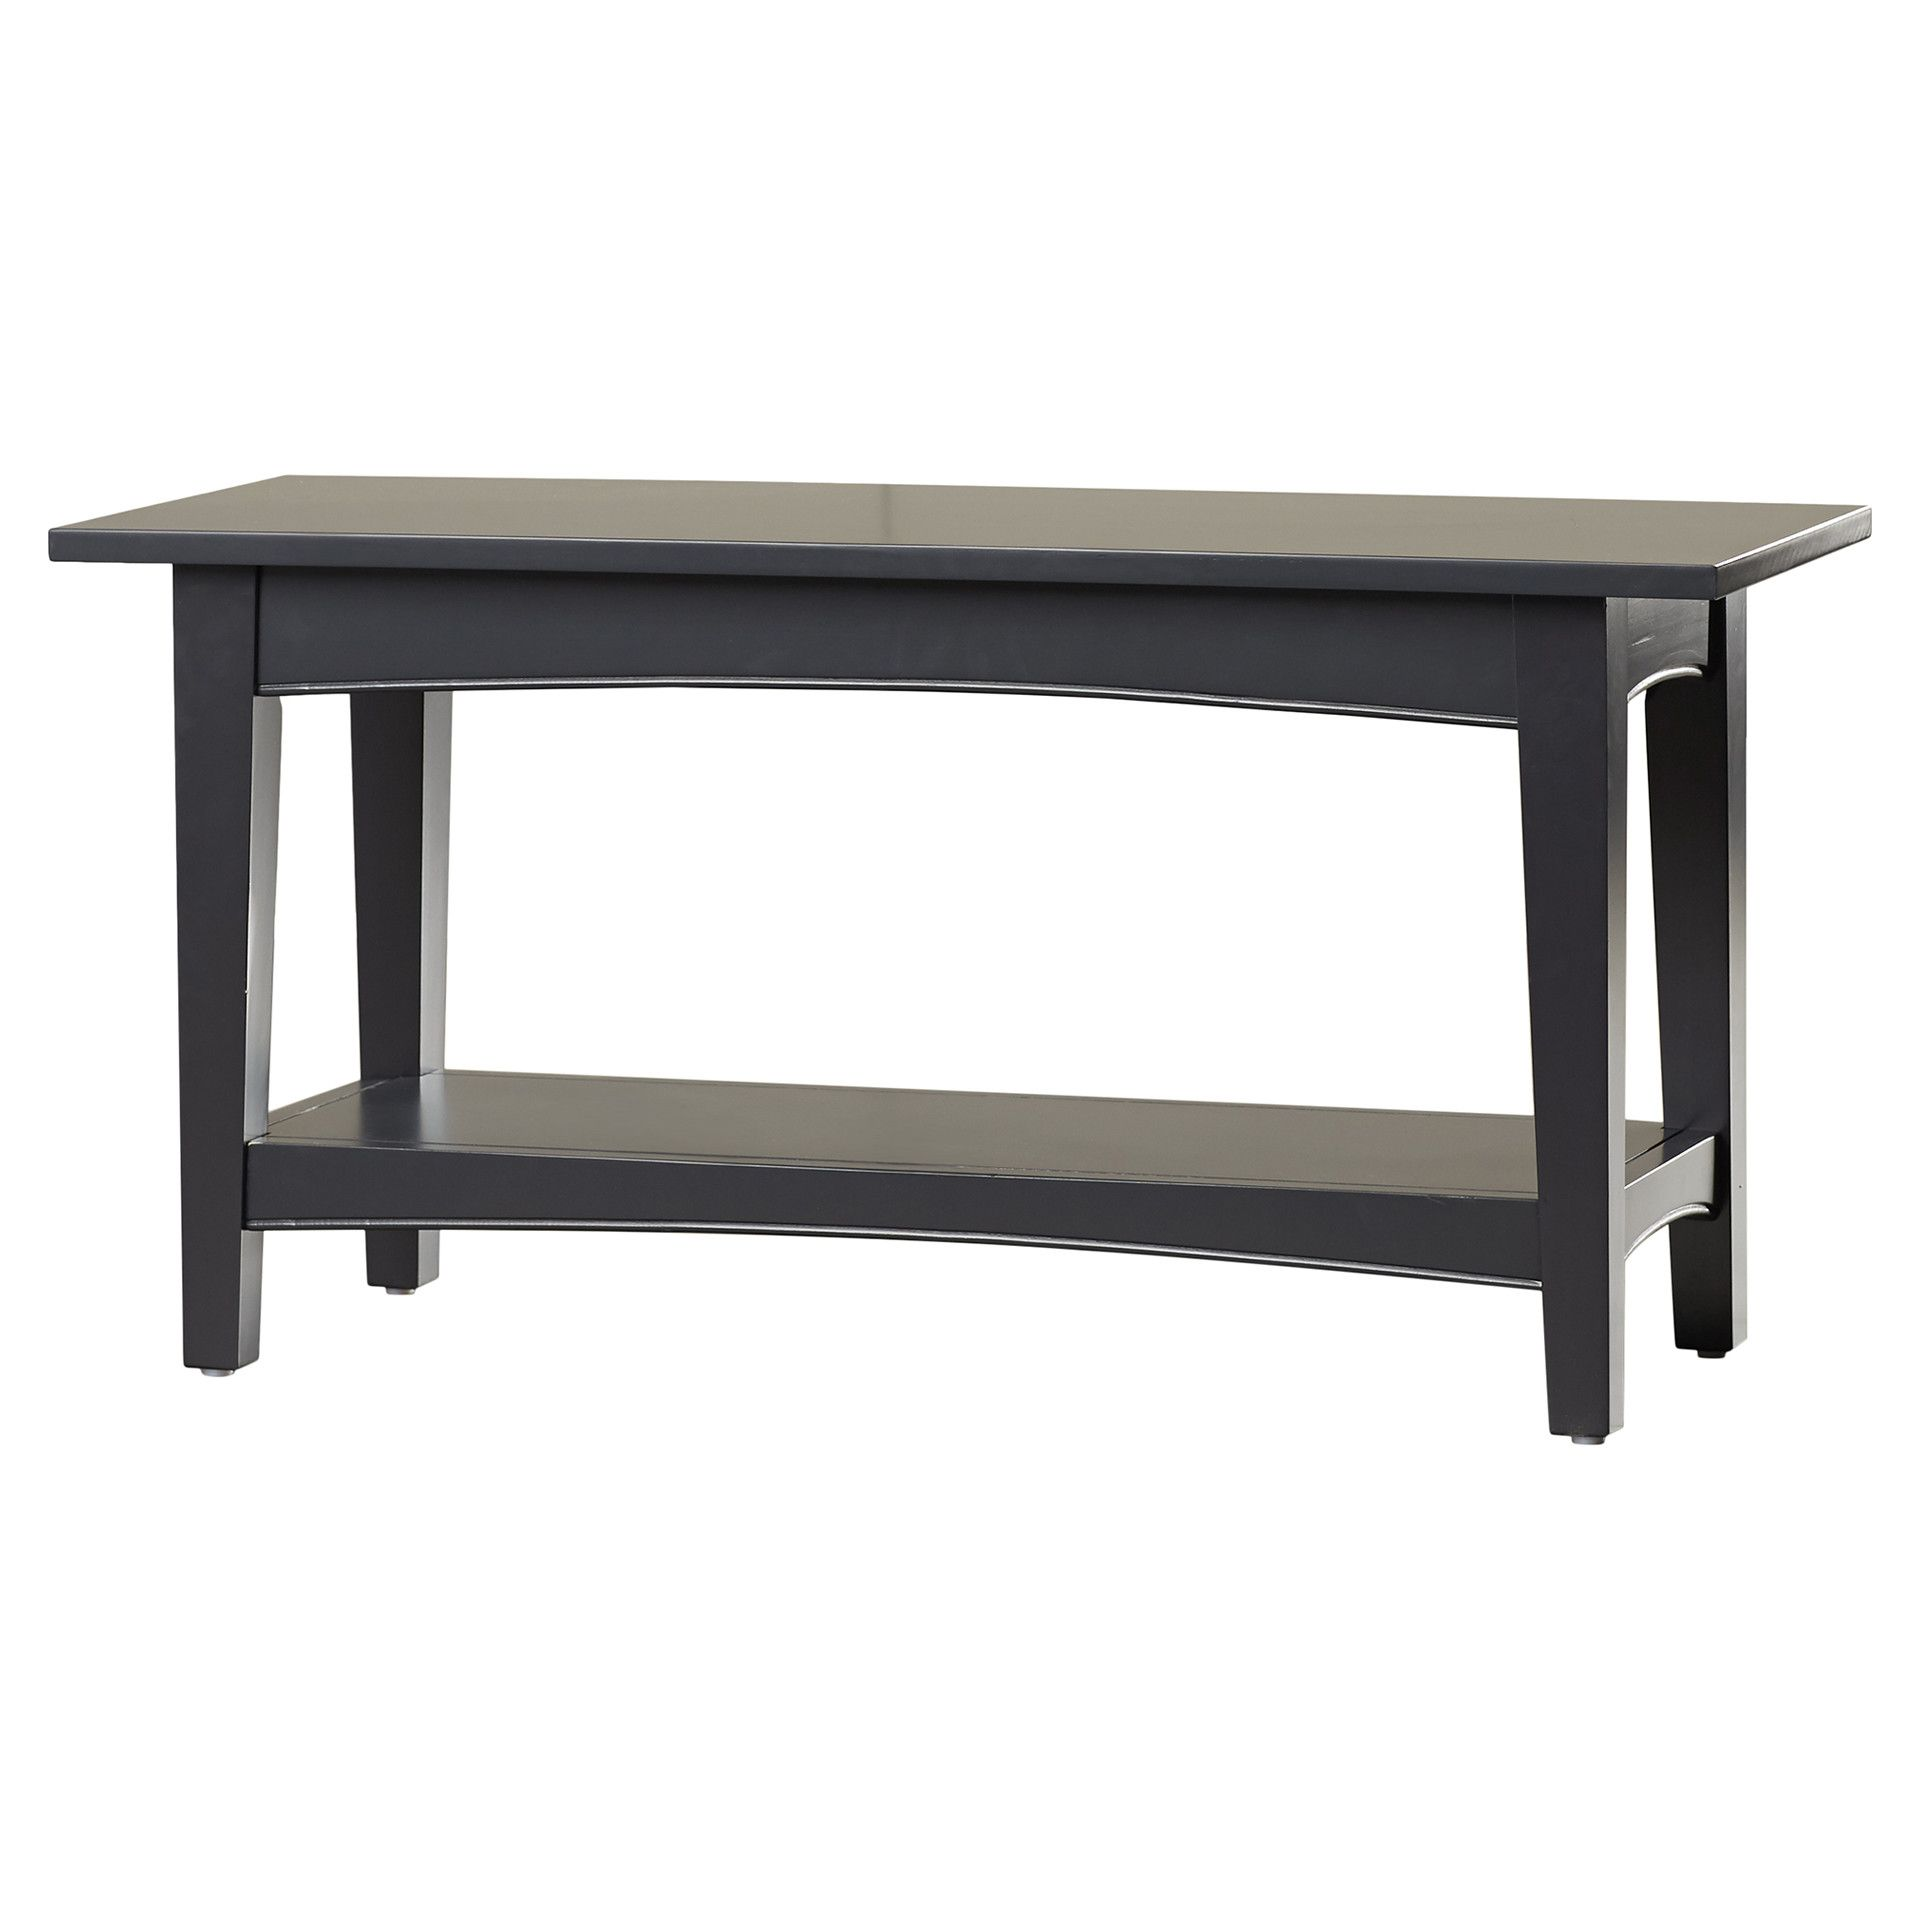 Bel Air One Seat Bench Table